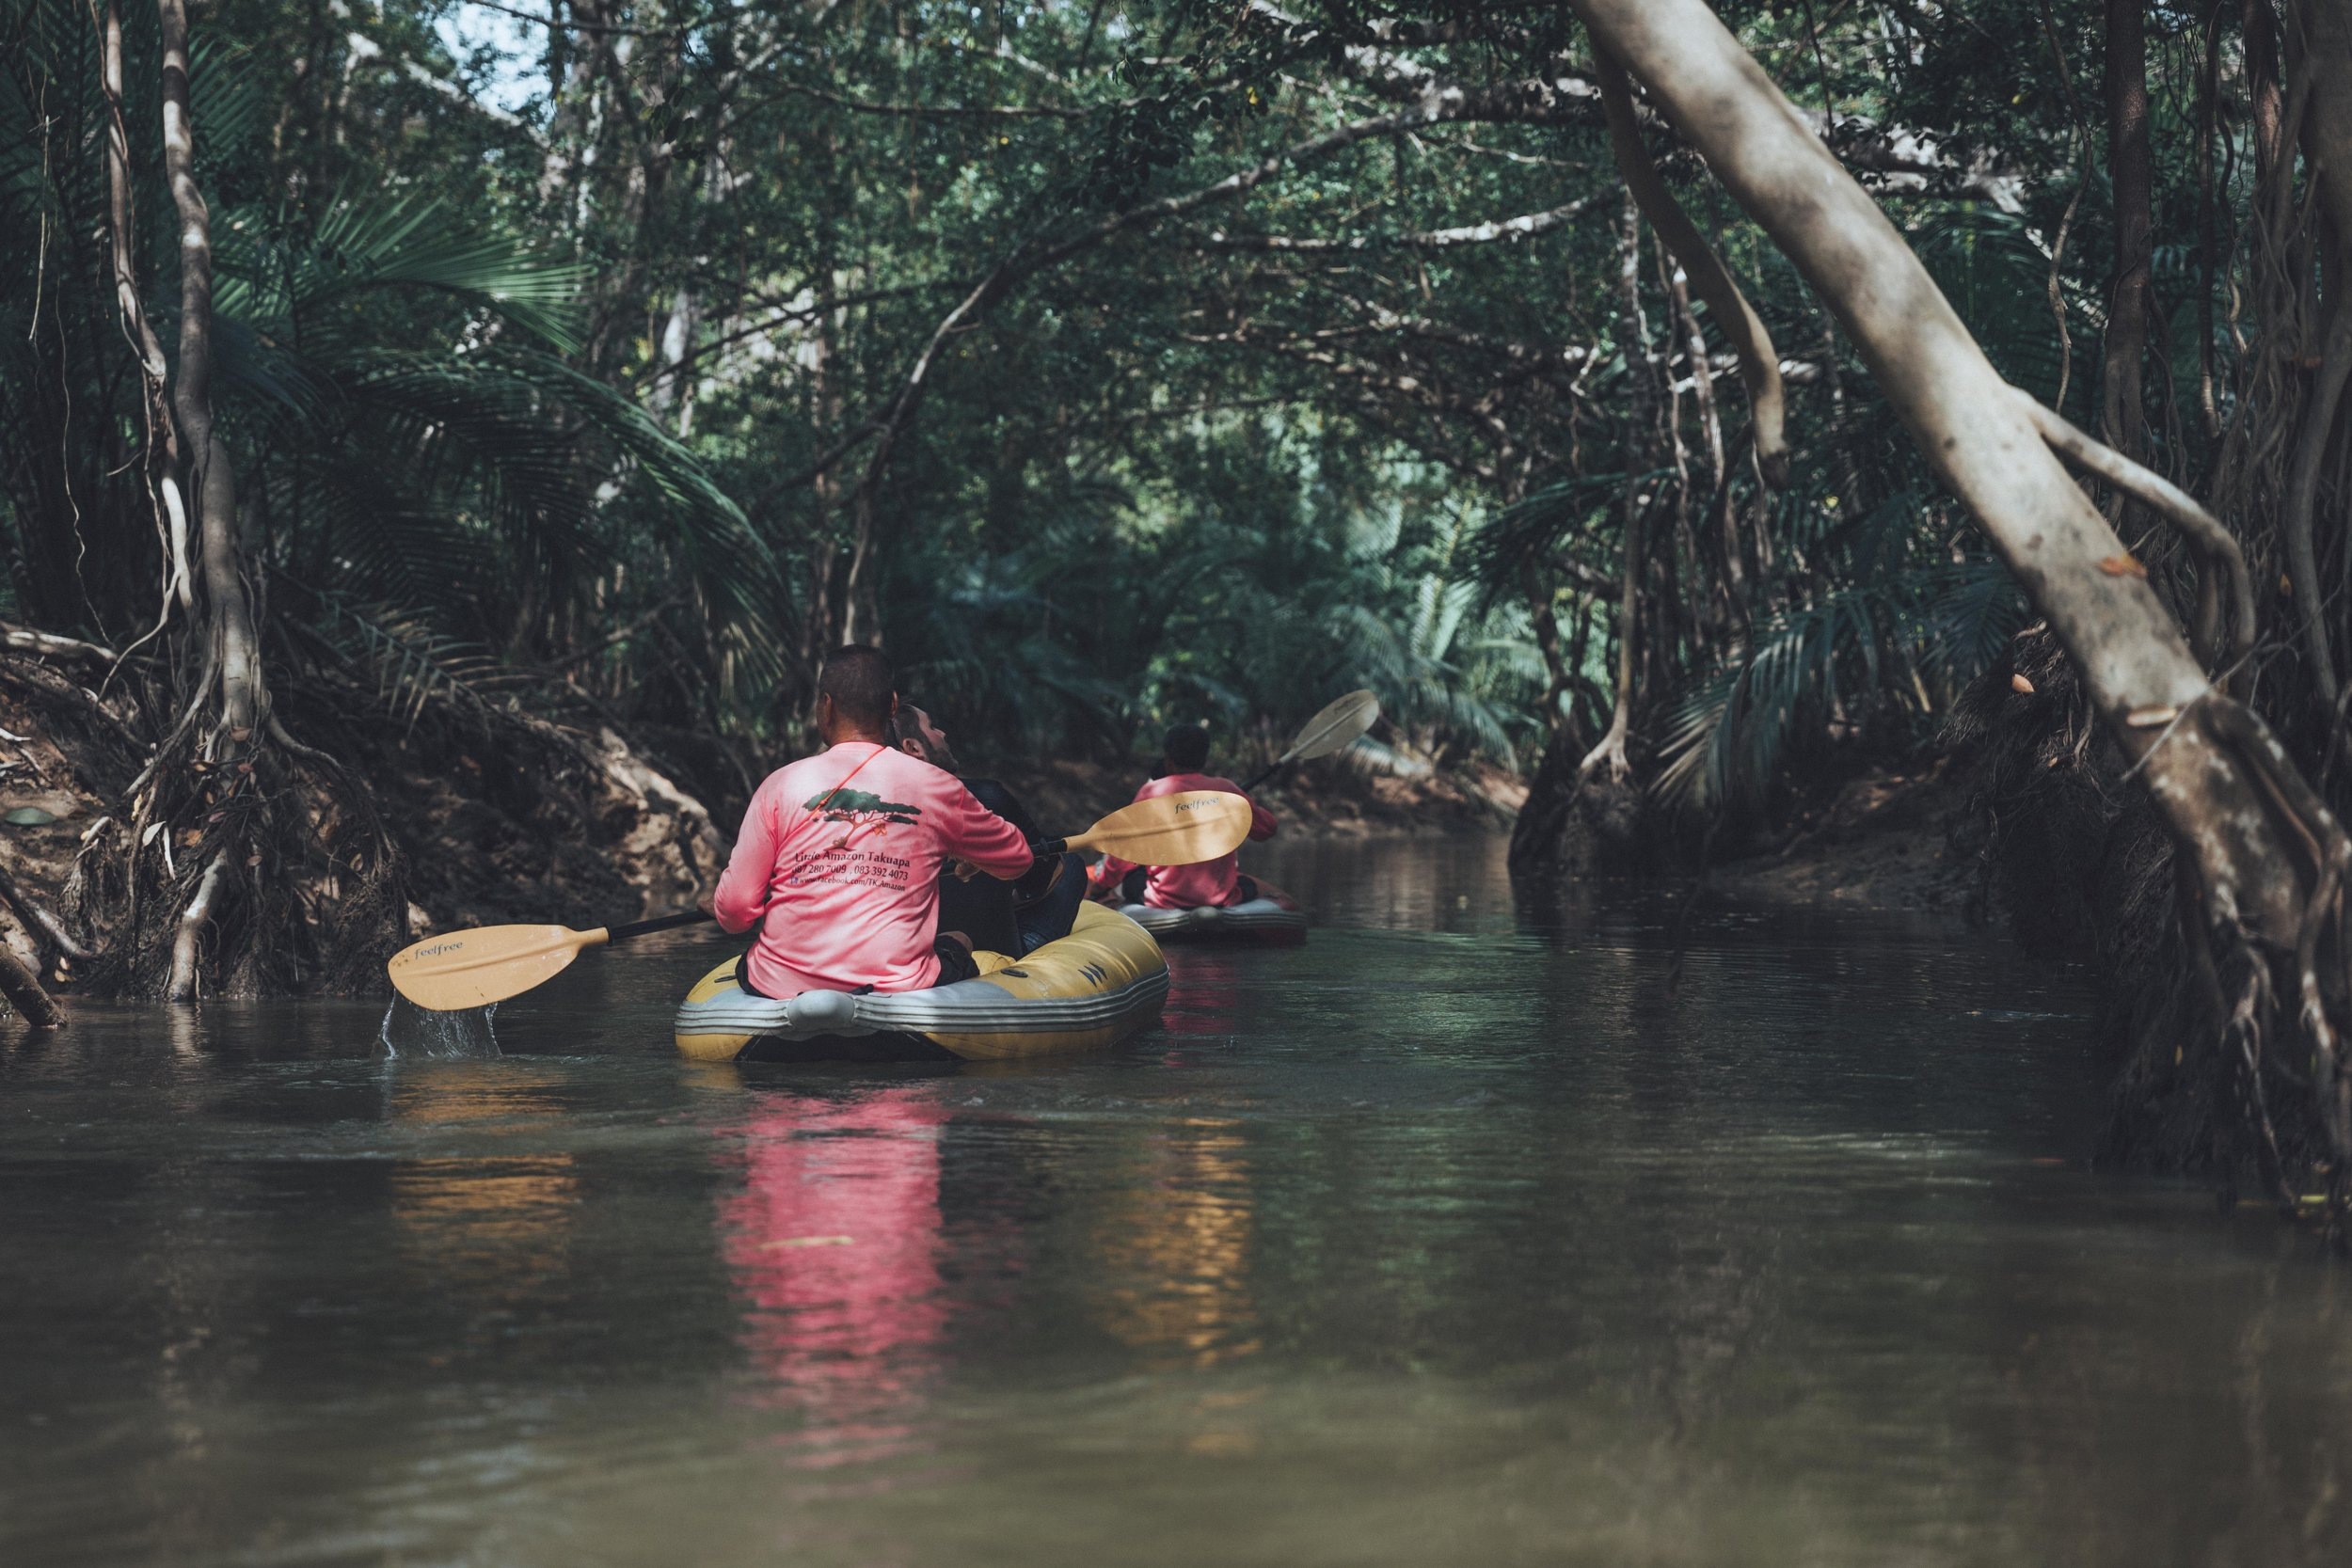 Paddling through the jungle